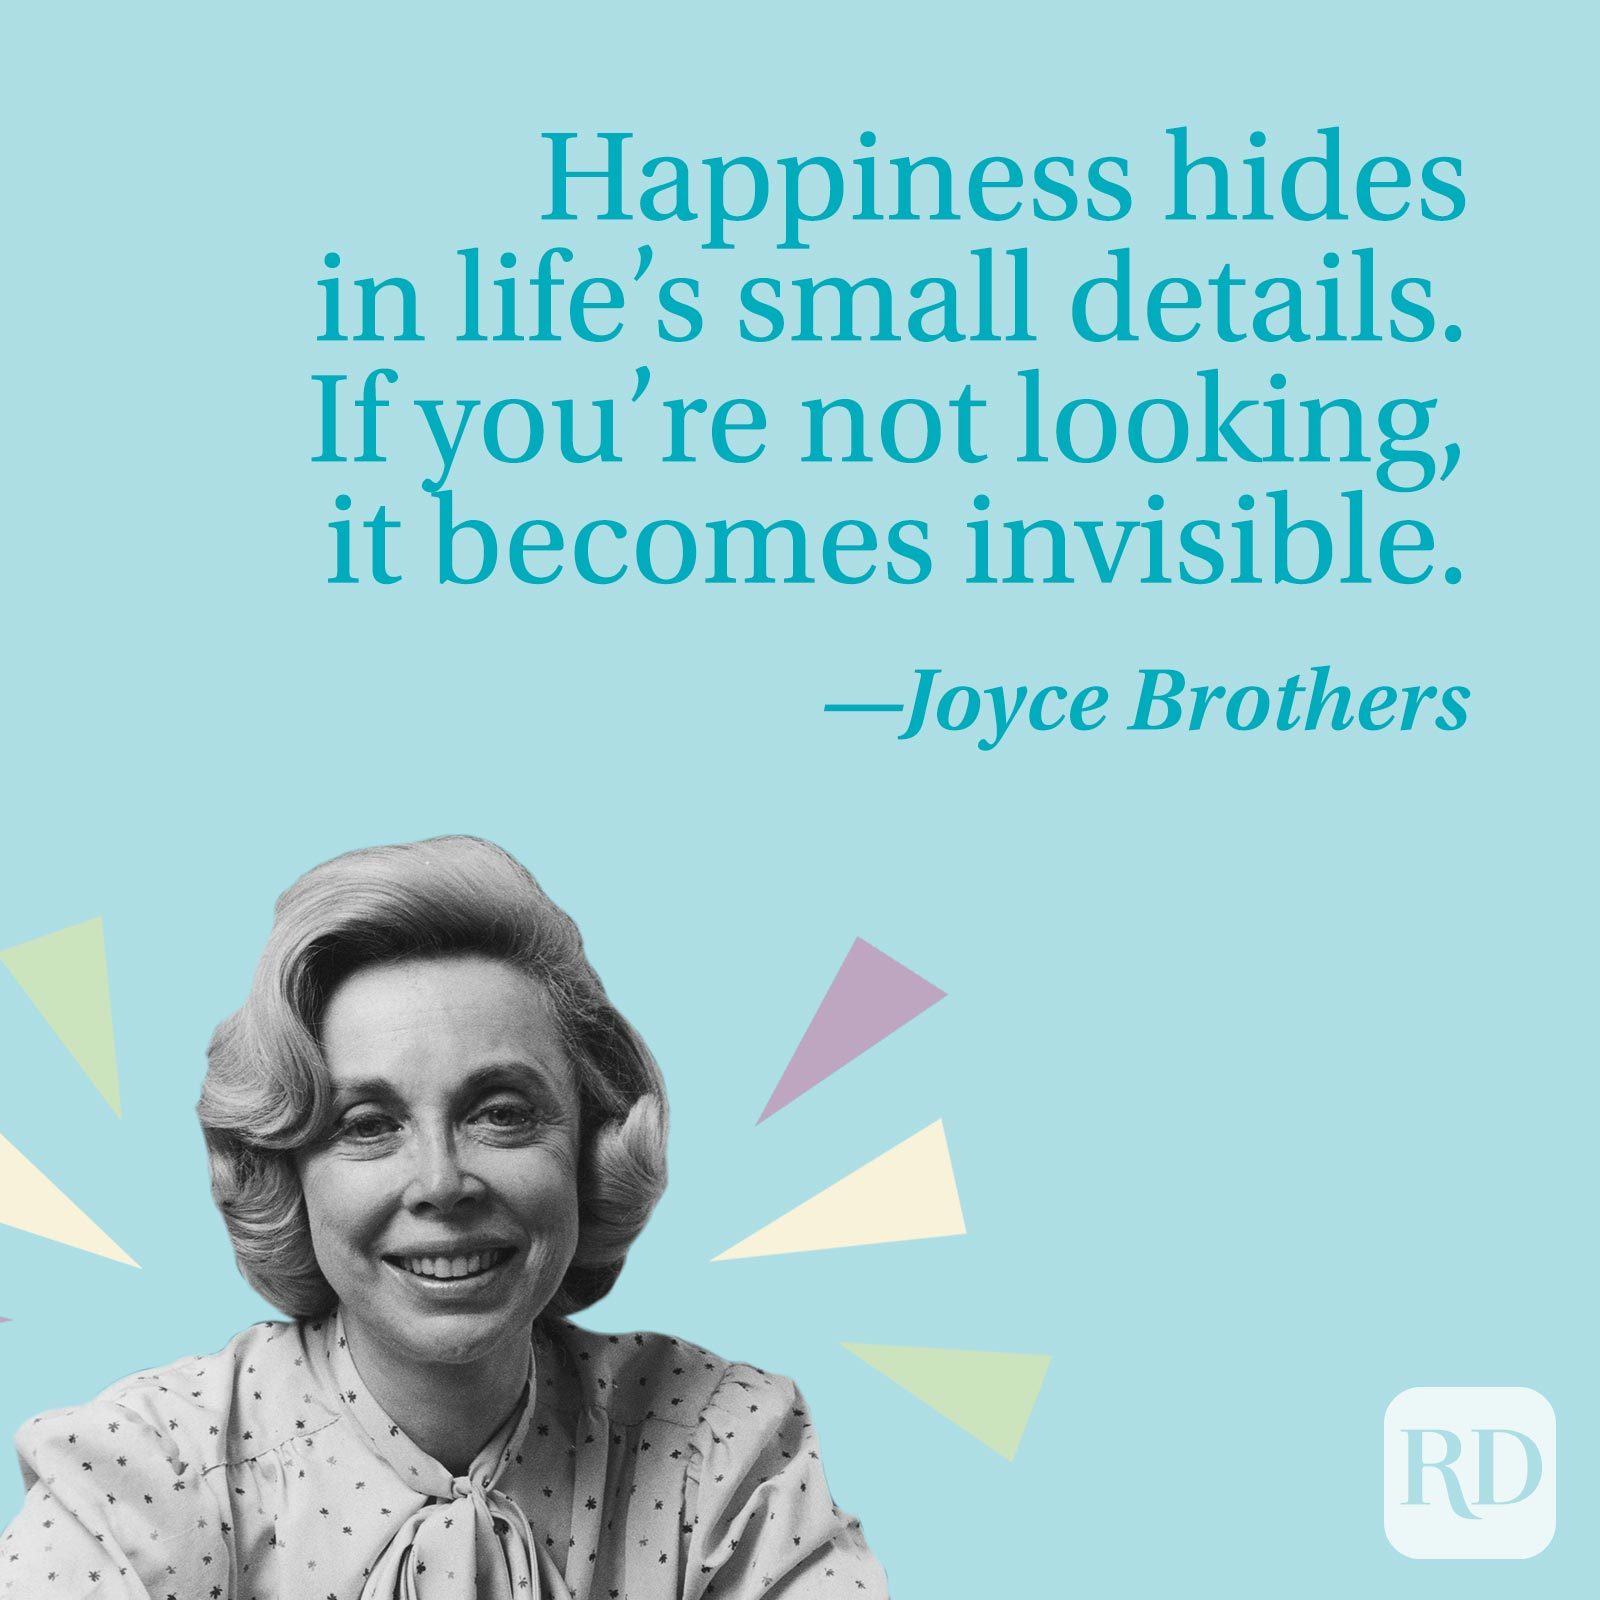 Happiness hides in life's small details. If you're not looking, it becomes invisible.—Joyce Brothers